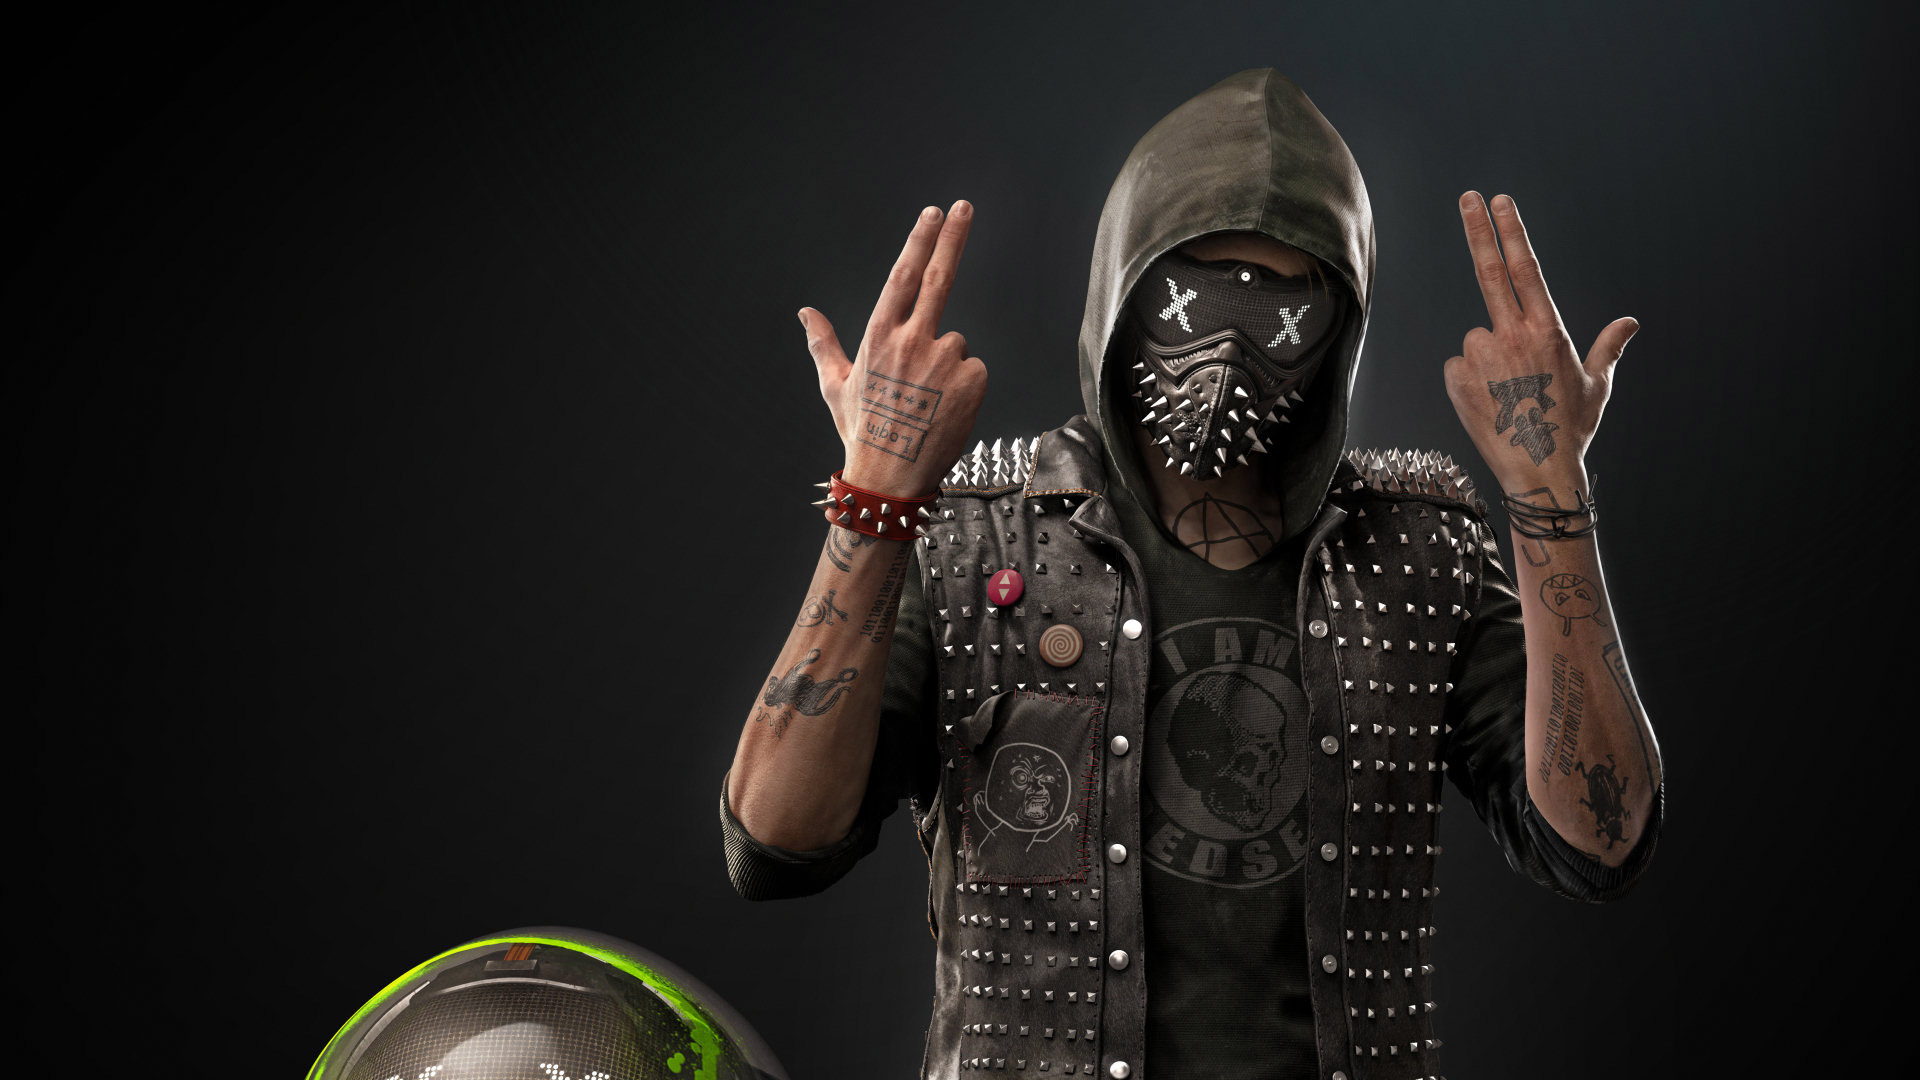 Watch Dogs 2 The Wrench, HD Games, 4k Wallpapers, Images